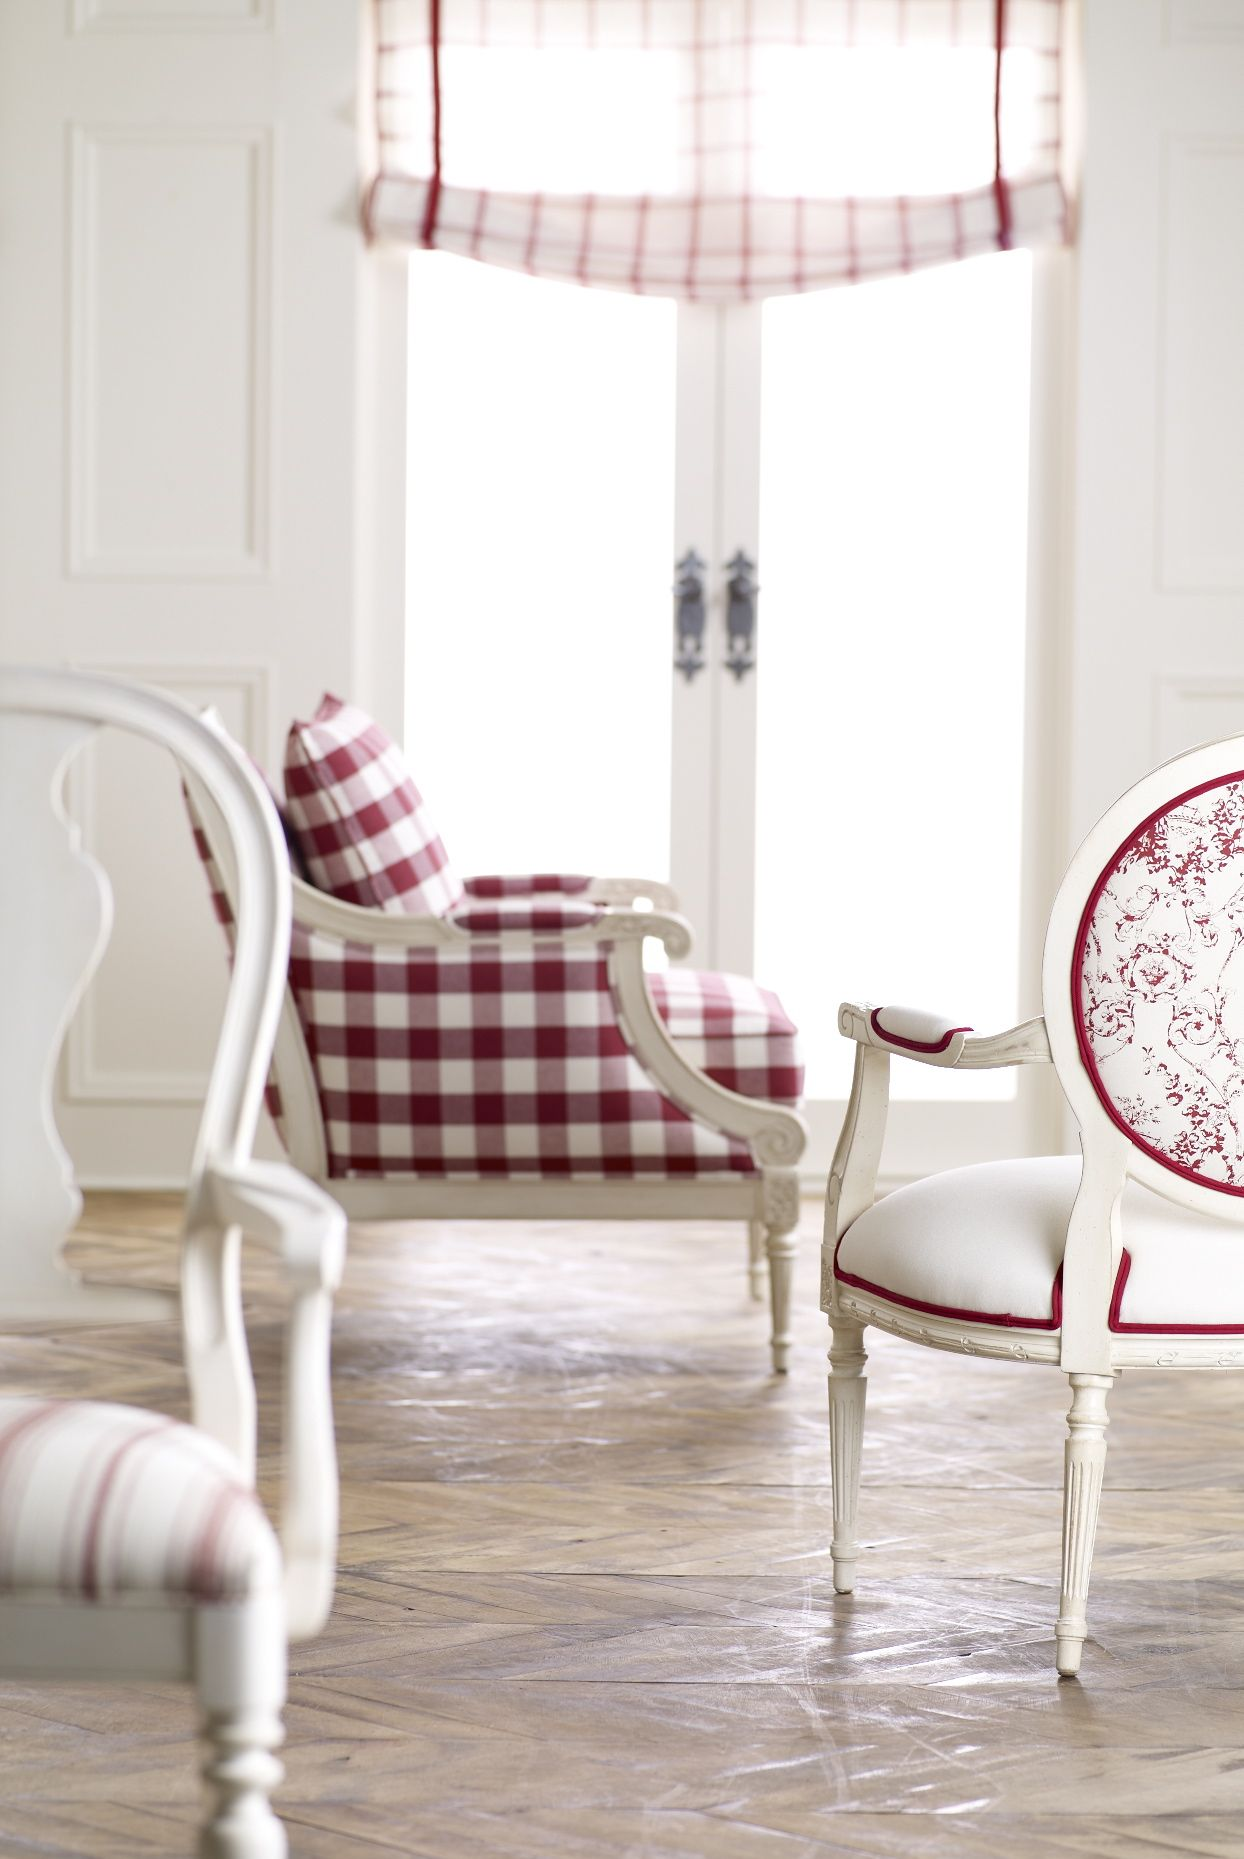 Snow White and Rose Red live happily ever after.  #home #fashion